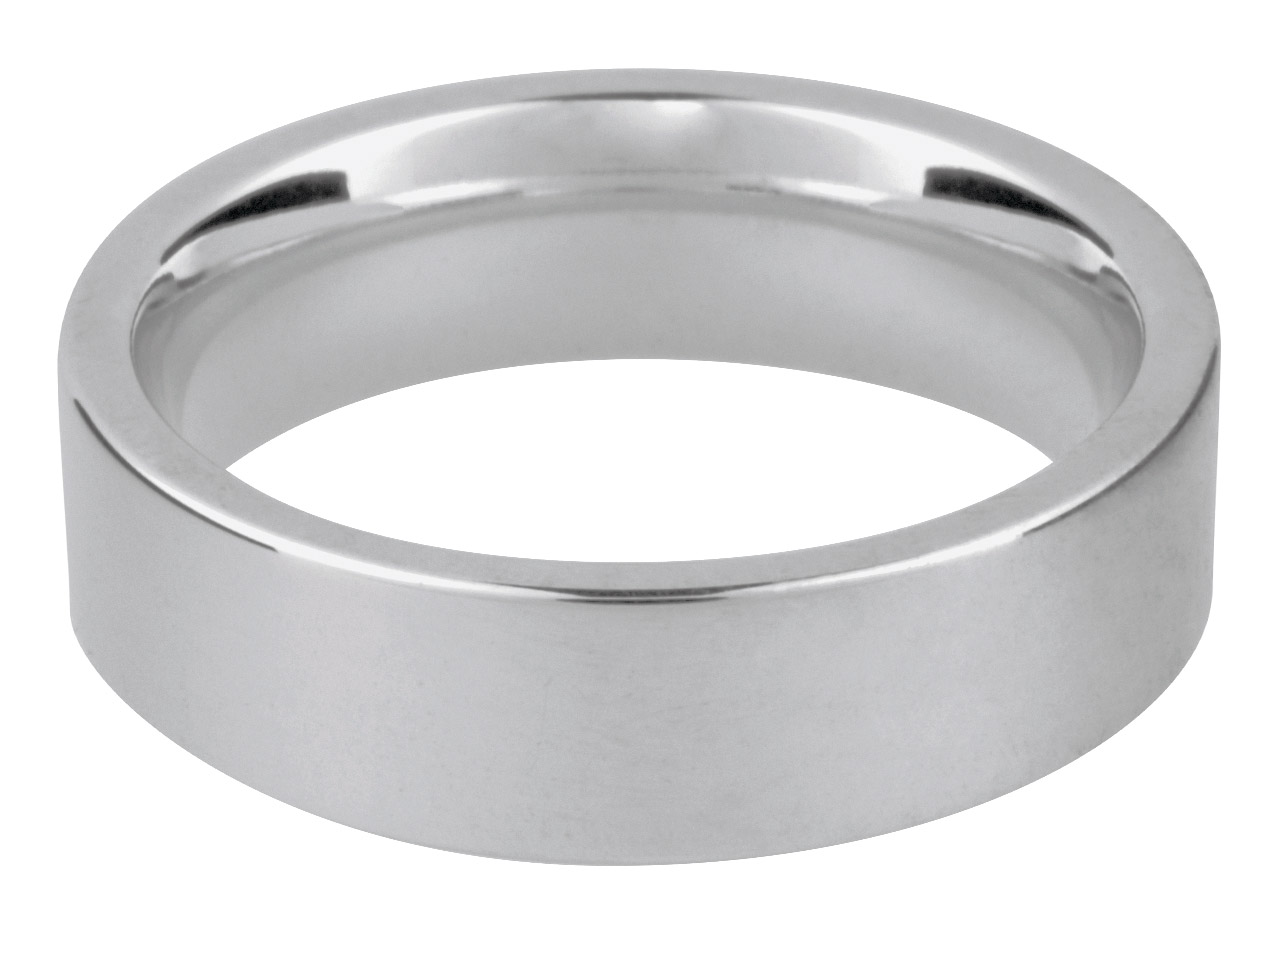 Platinum Easy Fit Wedding Ring     4.0mm Z 10.7gms Heavy Weight       Hallmarked Wall Thickness 1.81mm